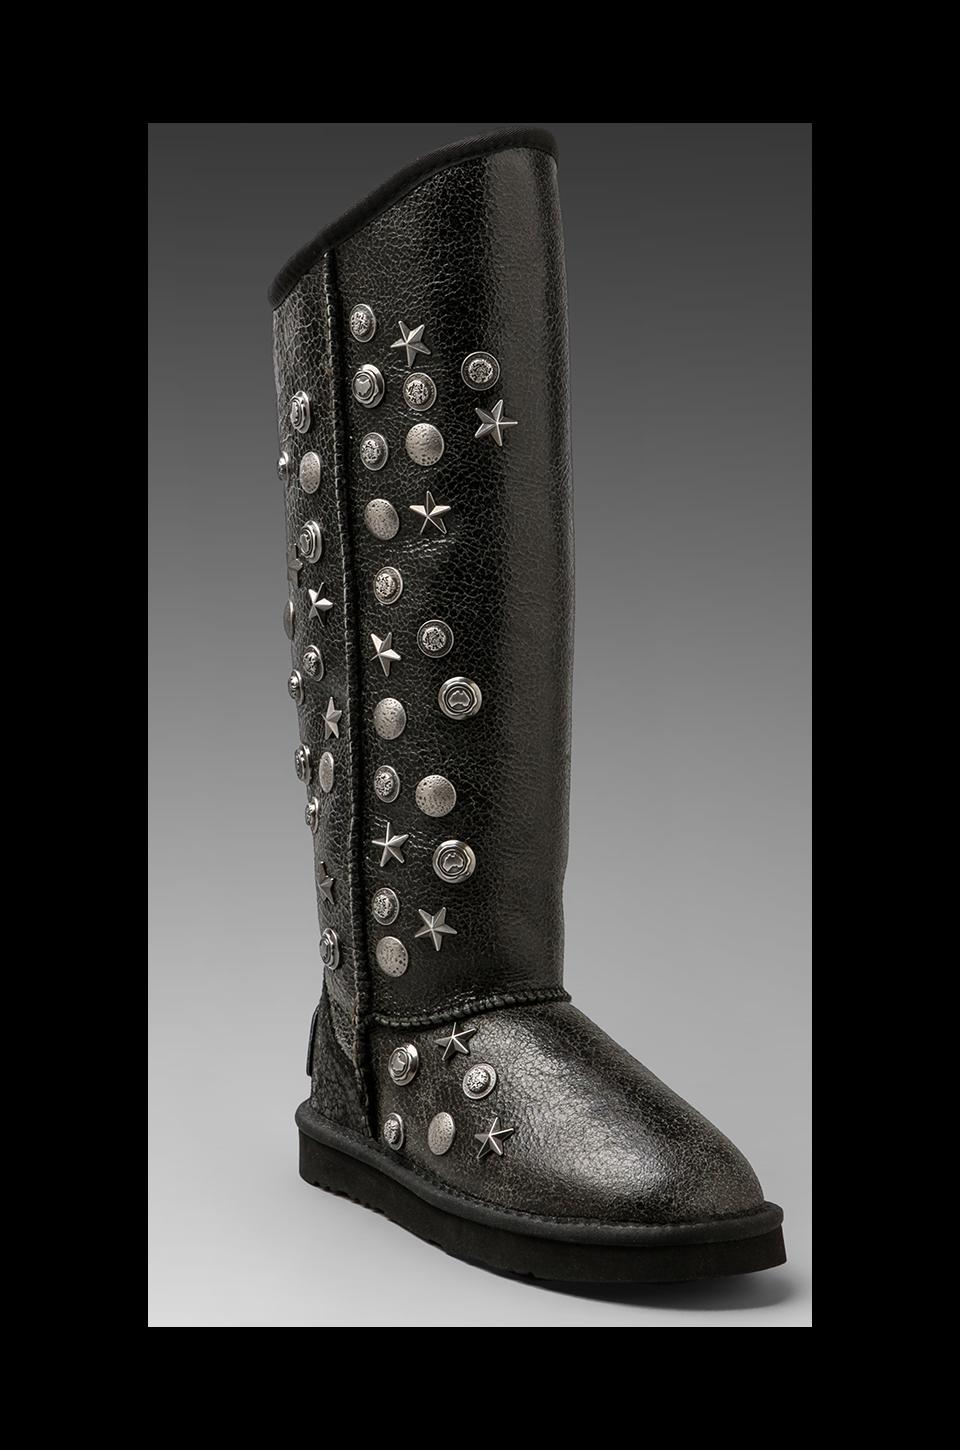 Australia Luxe Collective Angel X-Tall Boot with Sheepskin in Distressed Black